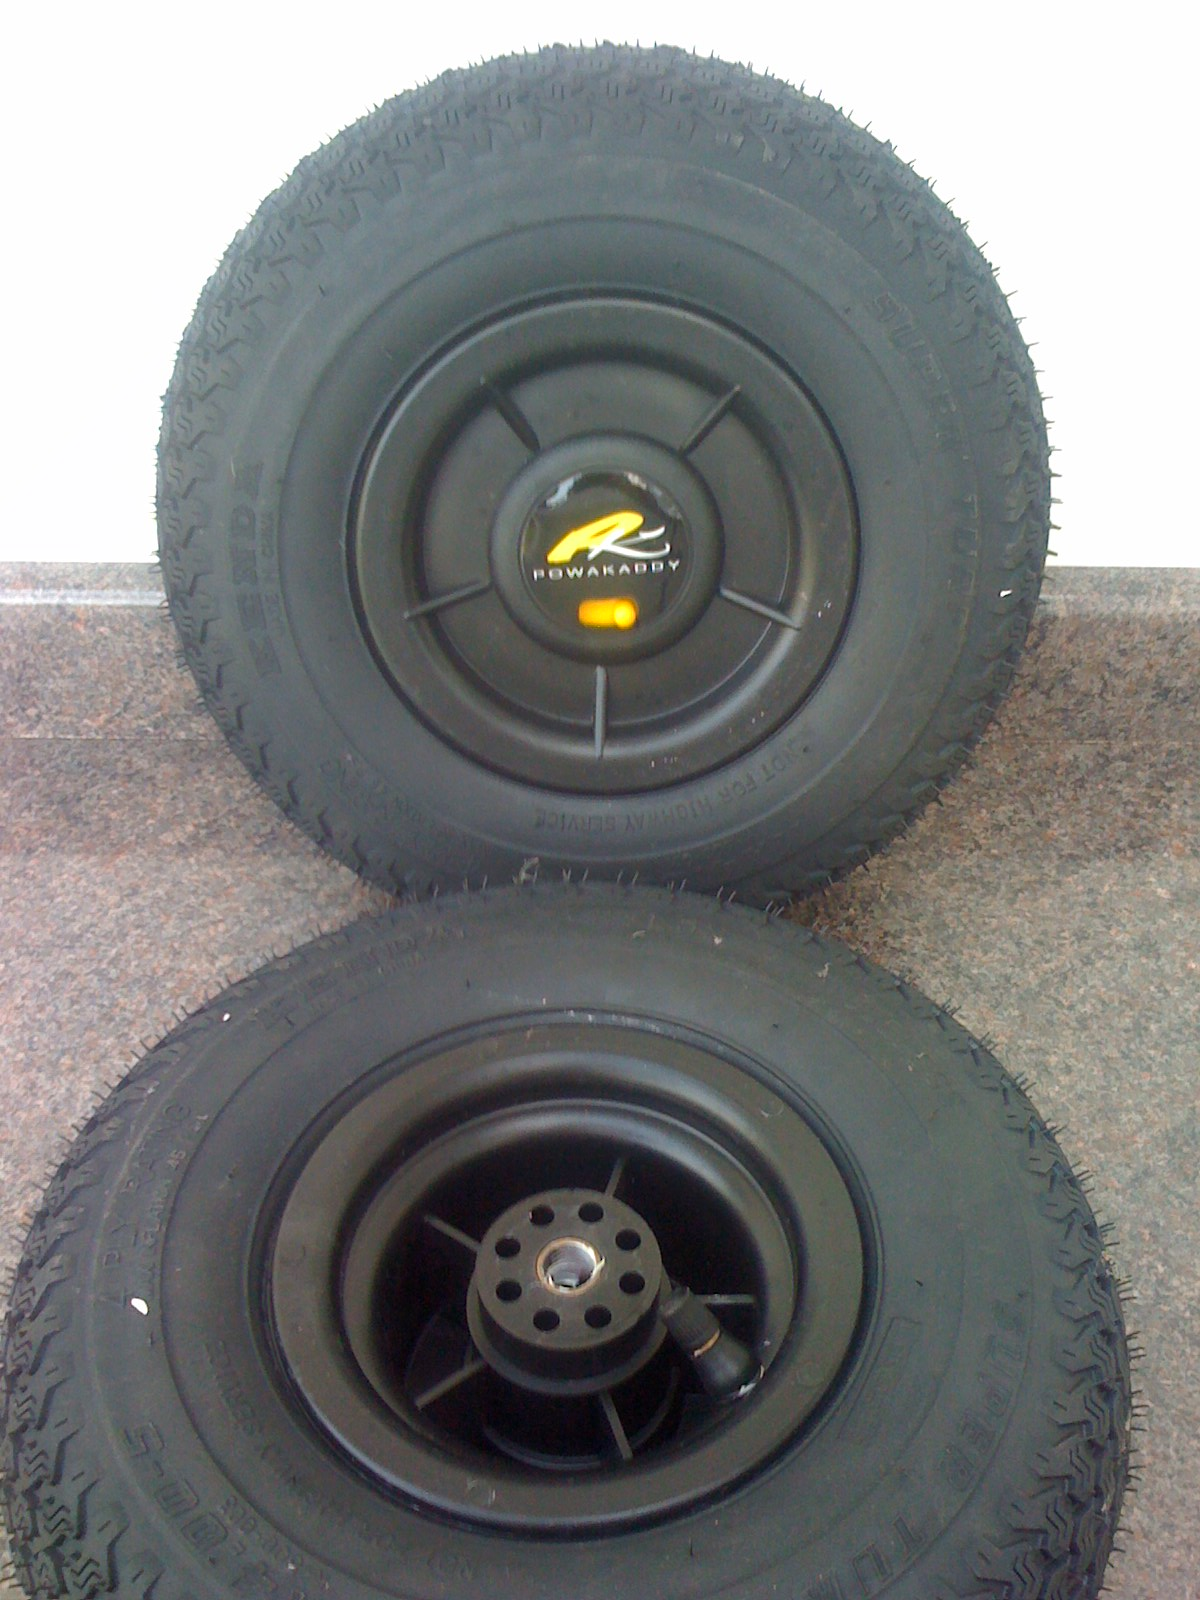 Air Wheel Suitable for Powakaddy Trolleys